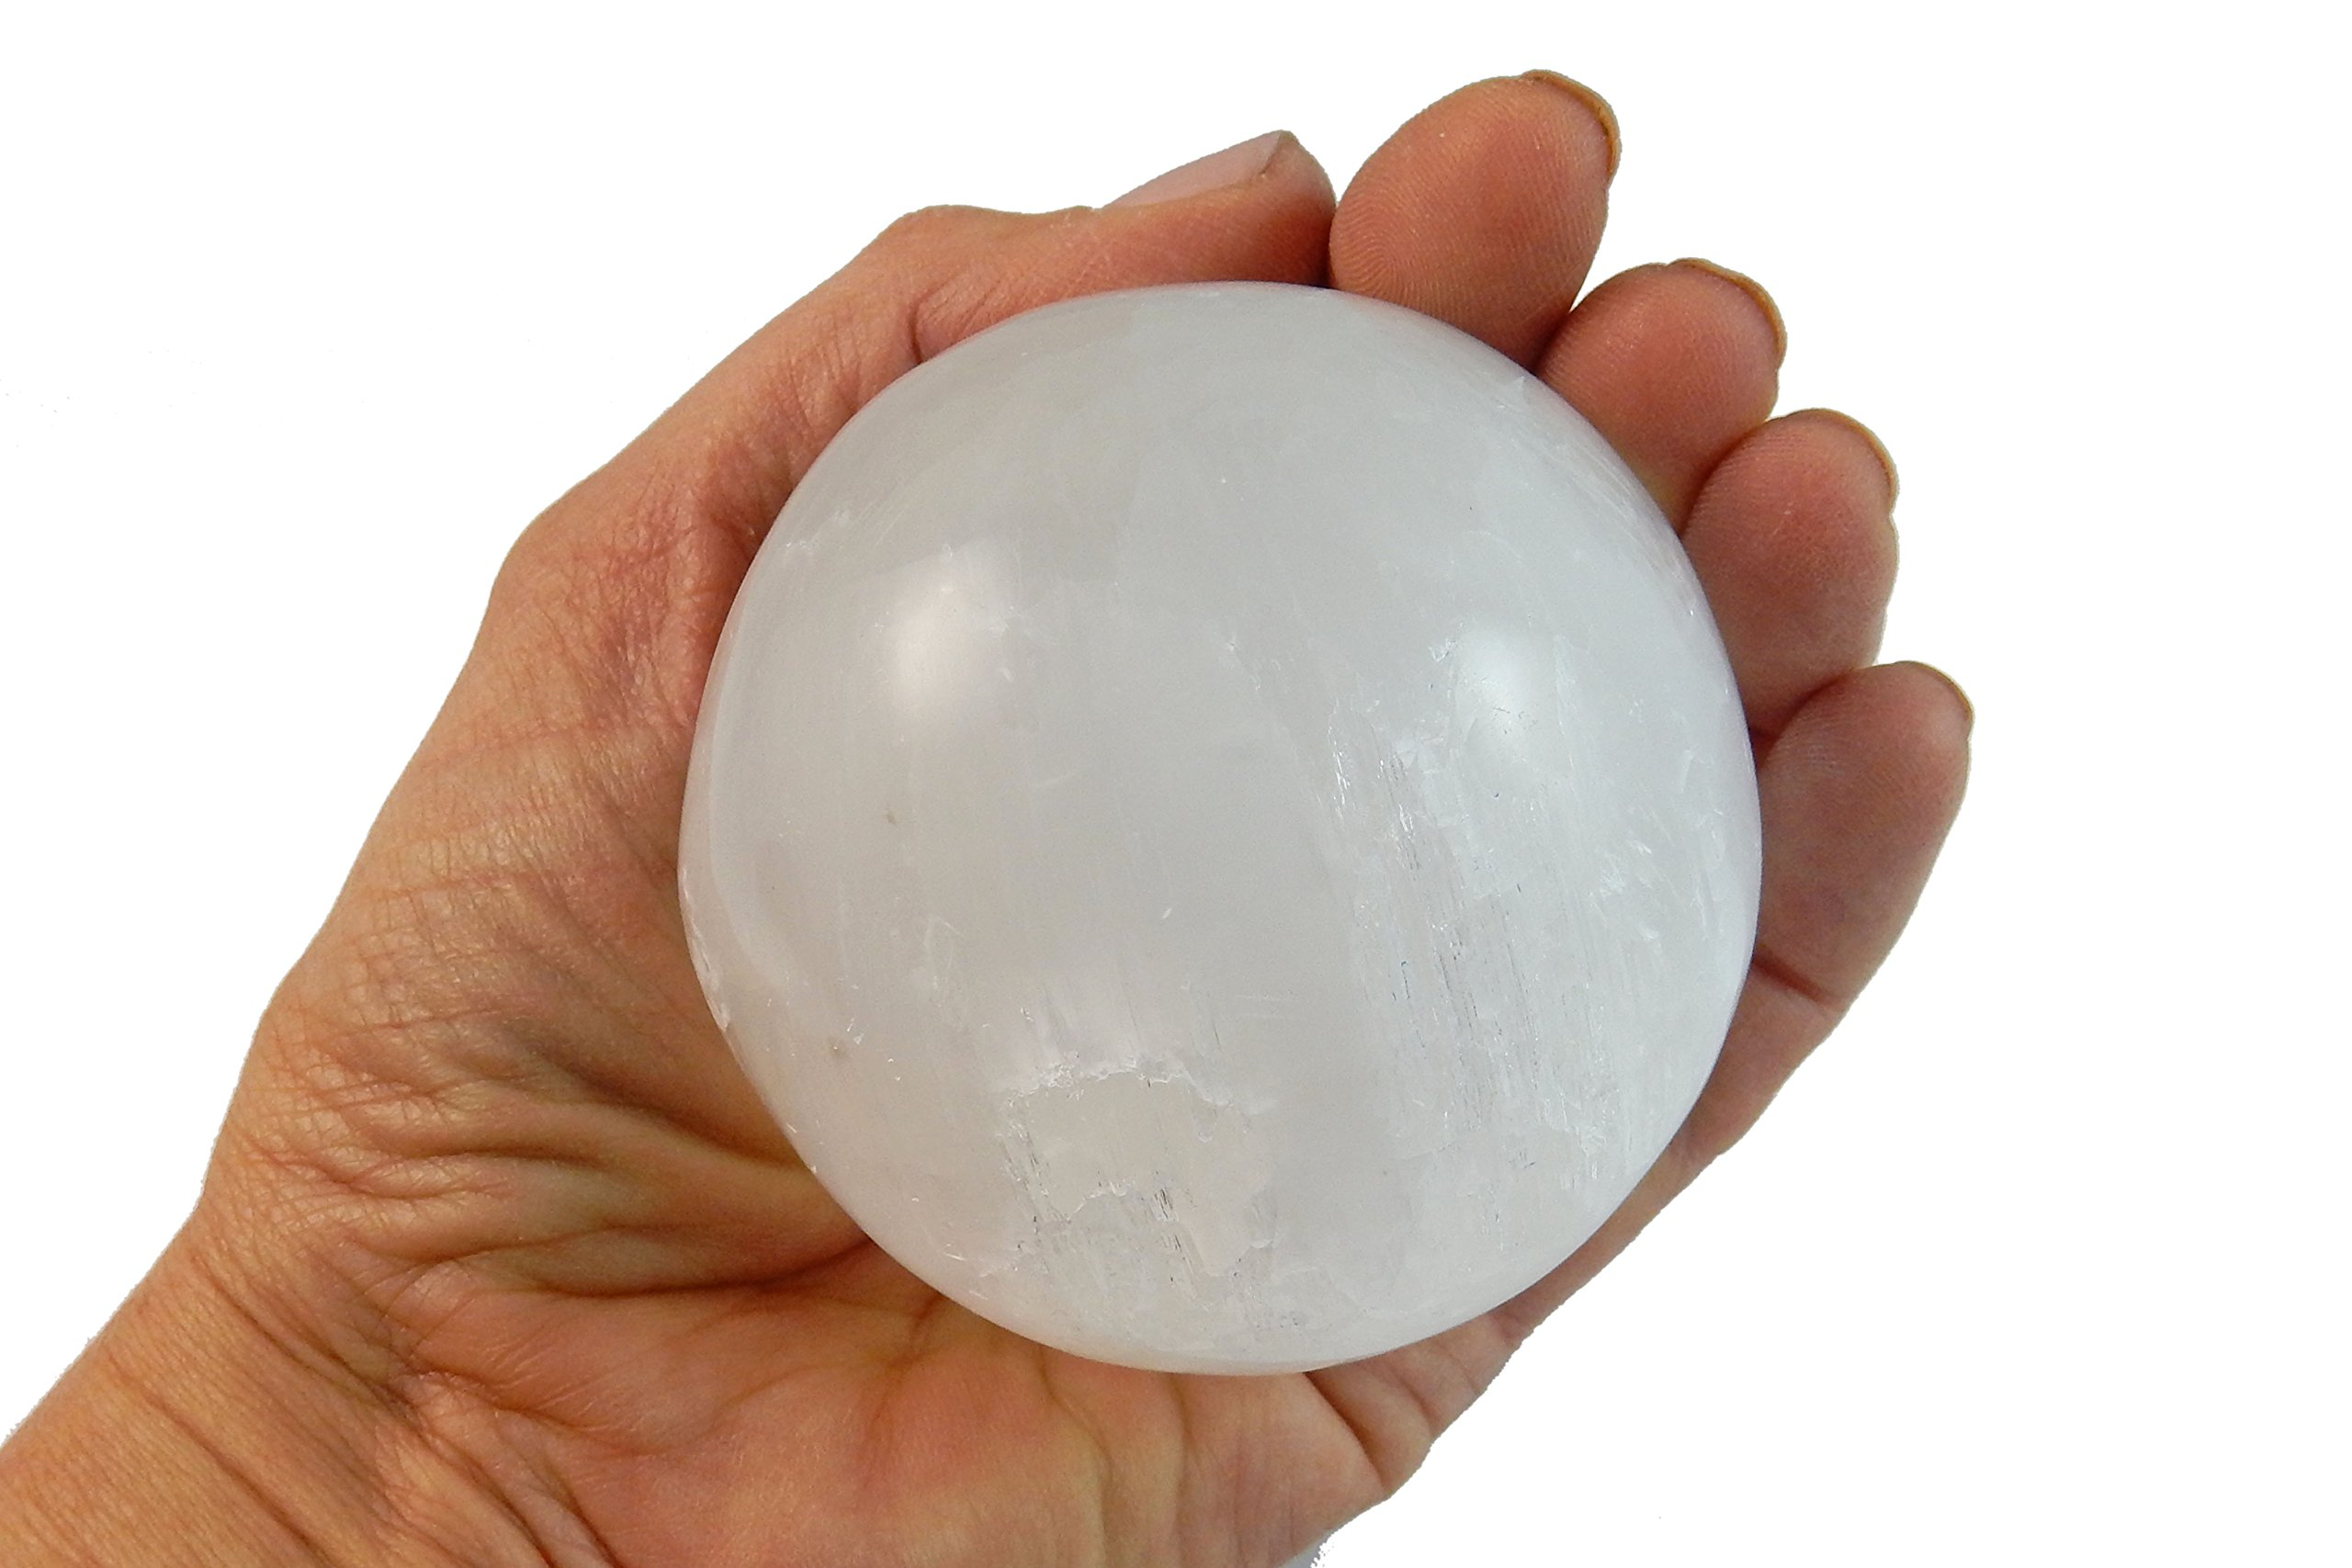 1 (One) Amazing Large Crystal Selenite Spiritual Healing Sphere / Ball on Wood Base with Certificate of Authenticity Beverly Oaks Exclusive